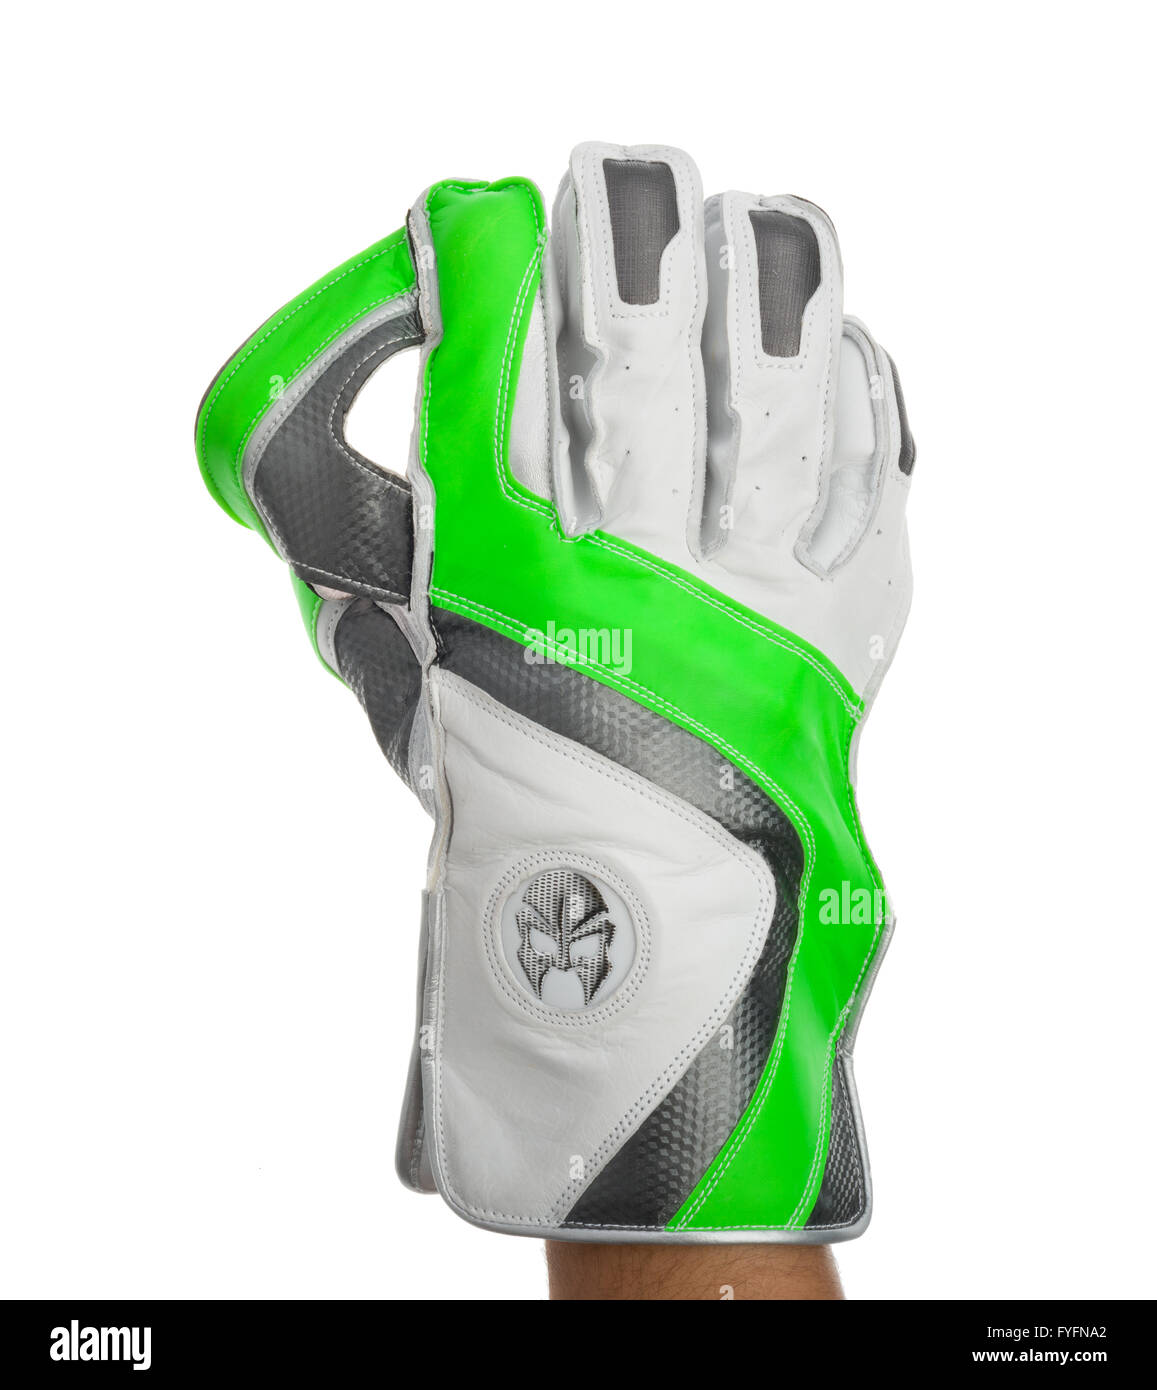 Wicket keepers glove. Cricket gloves. Hand protection. Sportswear. - Stock Image